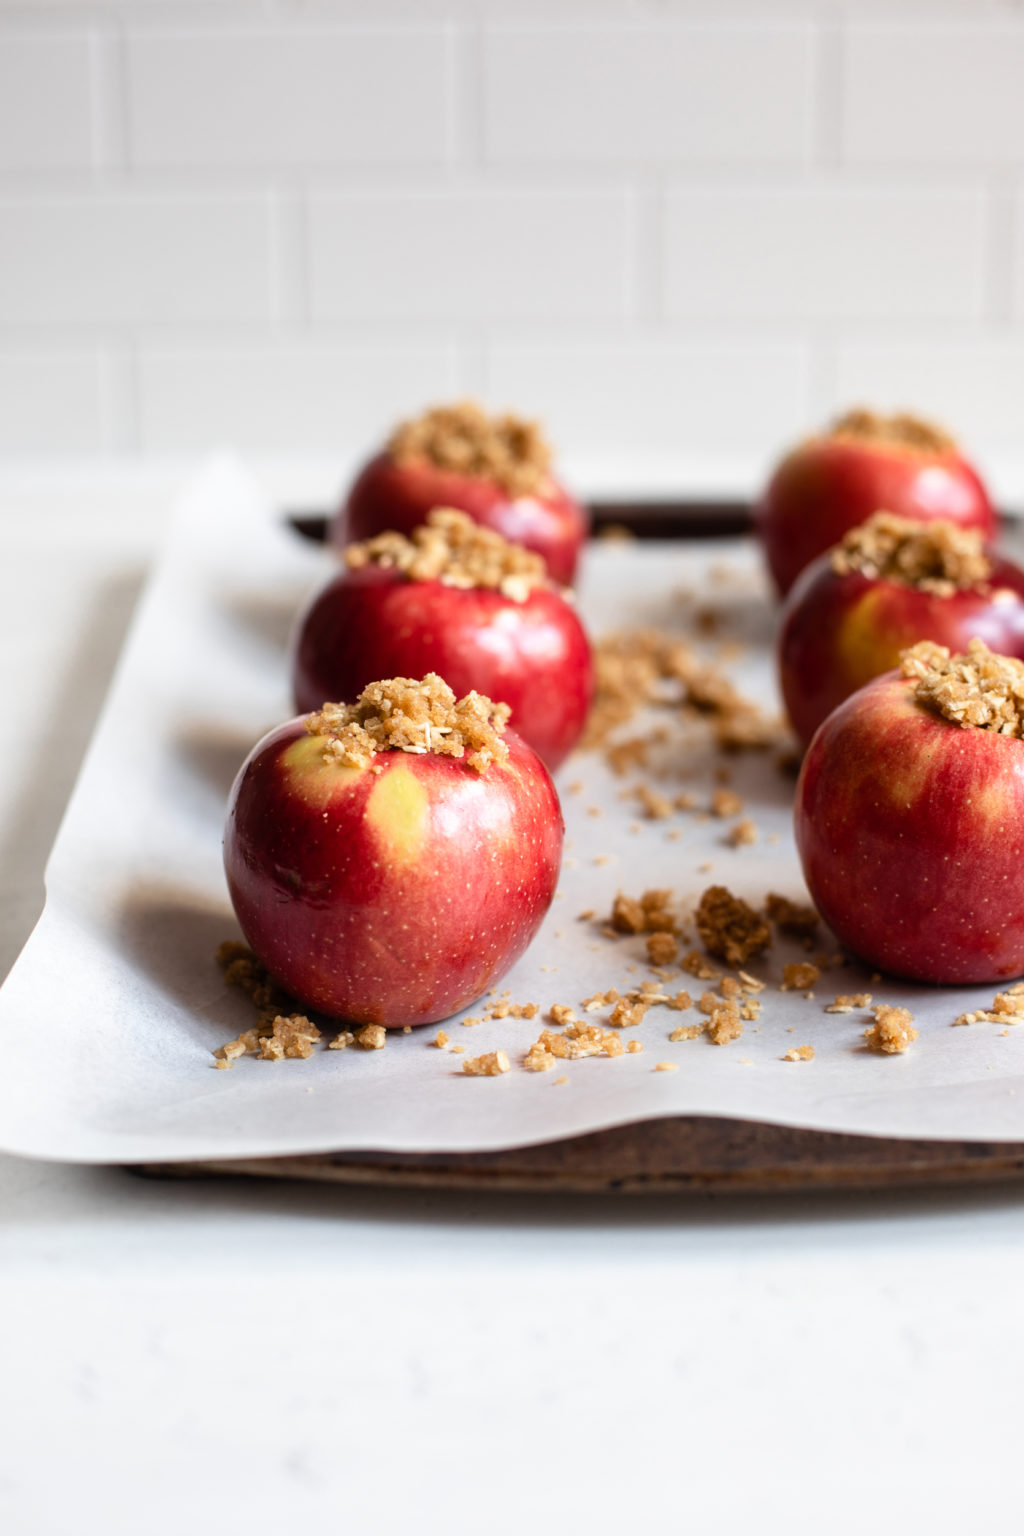 The baking sheet is covered with parchment paper and bright red apples, stuffed with oats, flour and brown sugar.